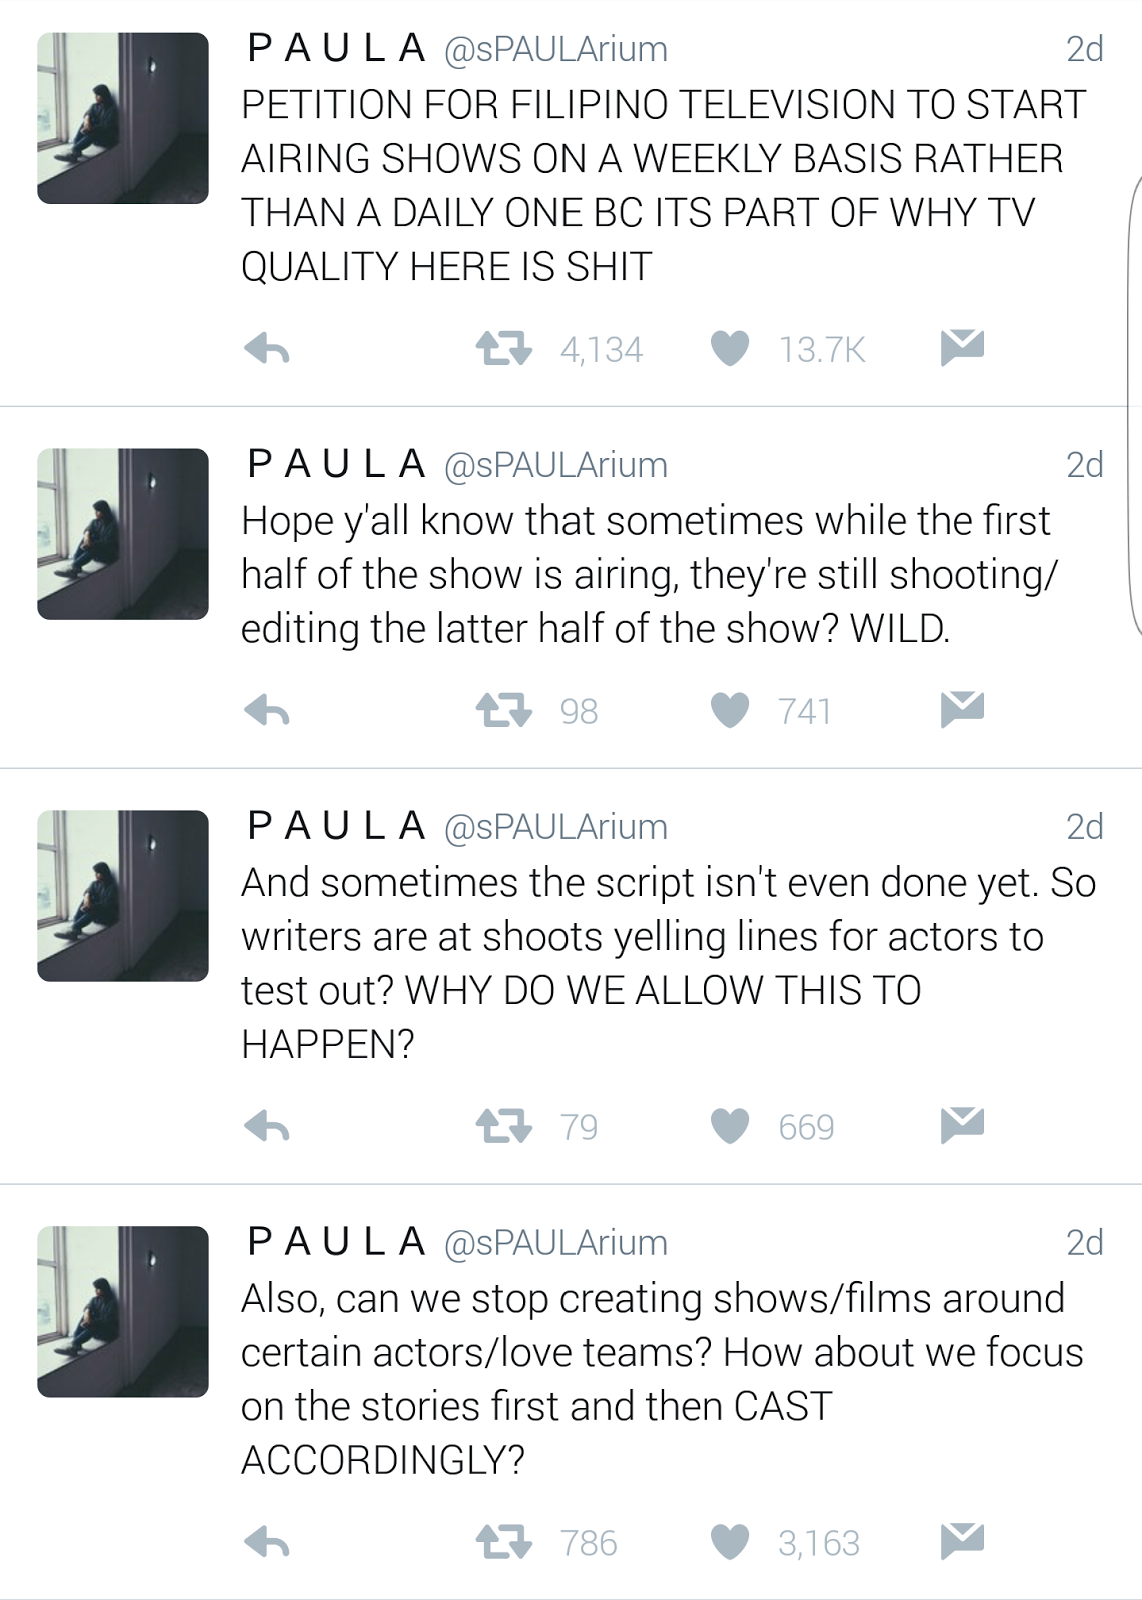 Fashion pulis tweet scoop bela padilla responds to netizen tweet scoop bela padilla responds to netizen lambasting system of producing teleseryes in the local scene ccuart Images